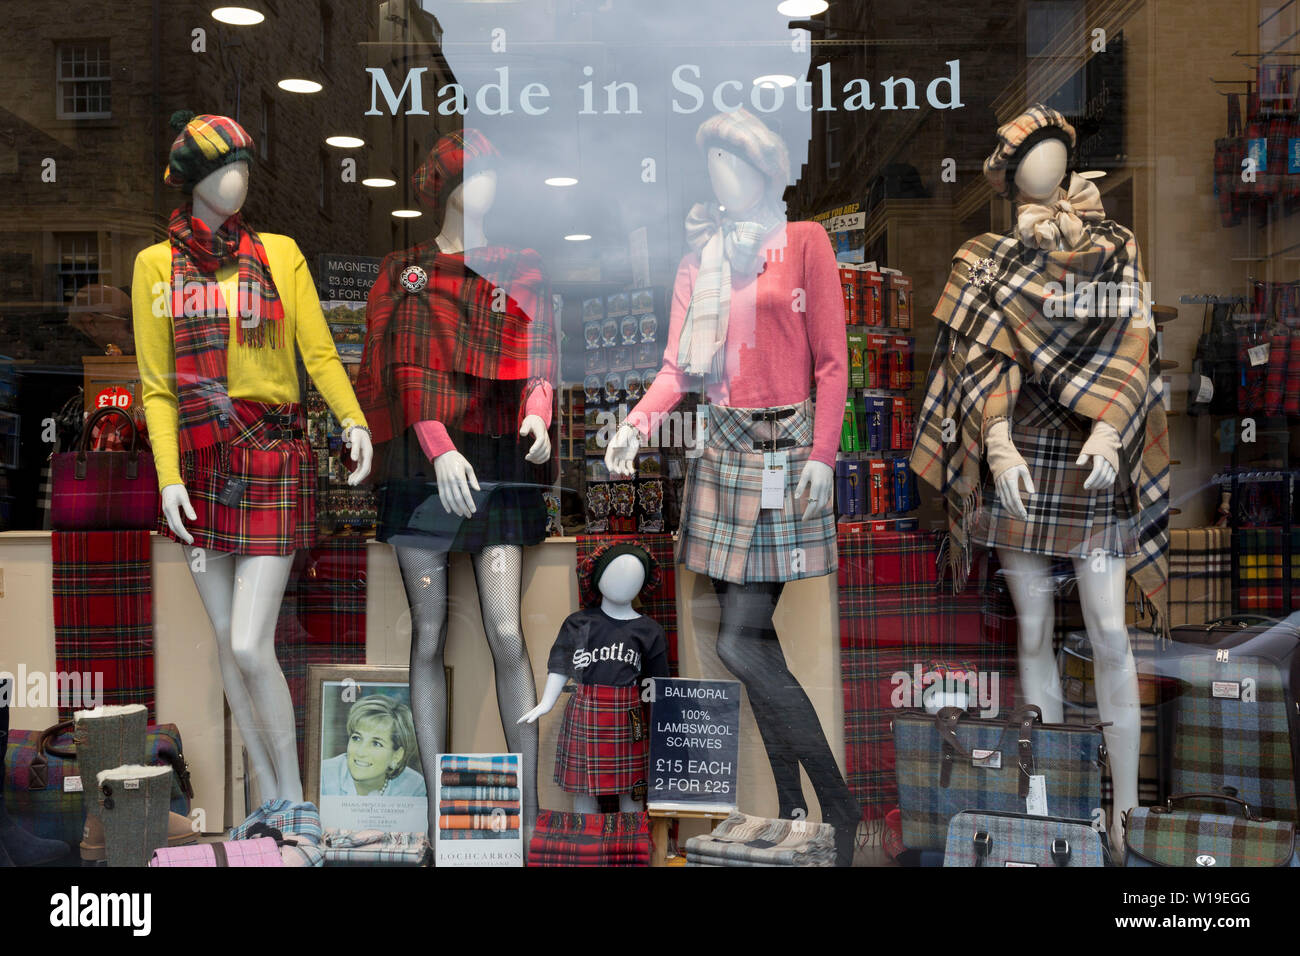 Tartan kilts and national Scots fabrics on sale in the window of a tourist shop on the Royal Mile in Edinburgh, on 25th June 2019, in Edinburgh, Scotland. - Stock Image